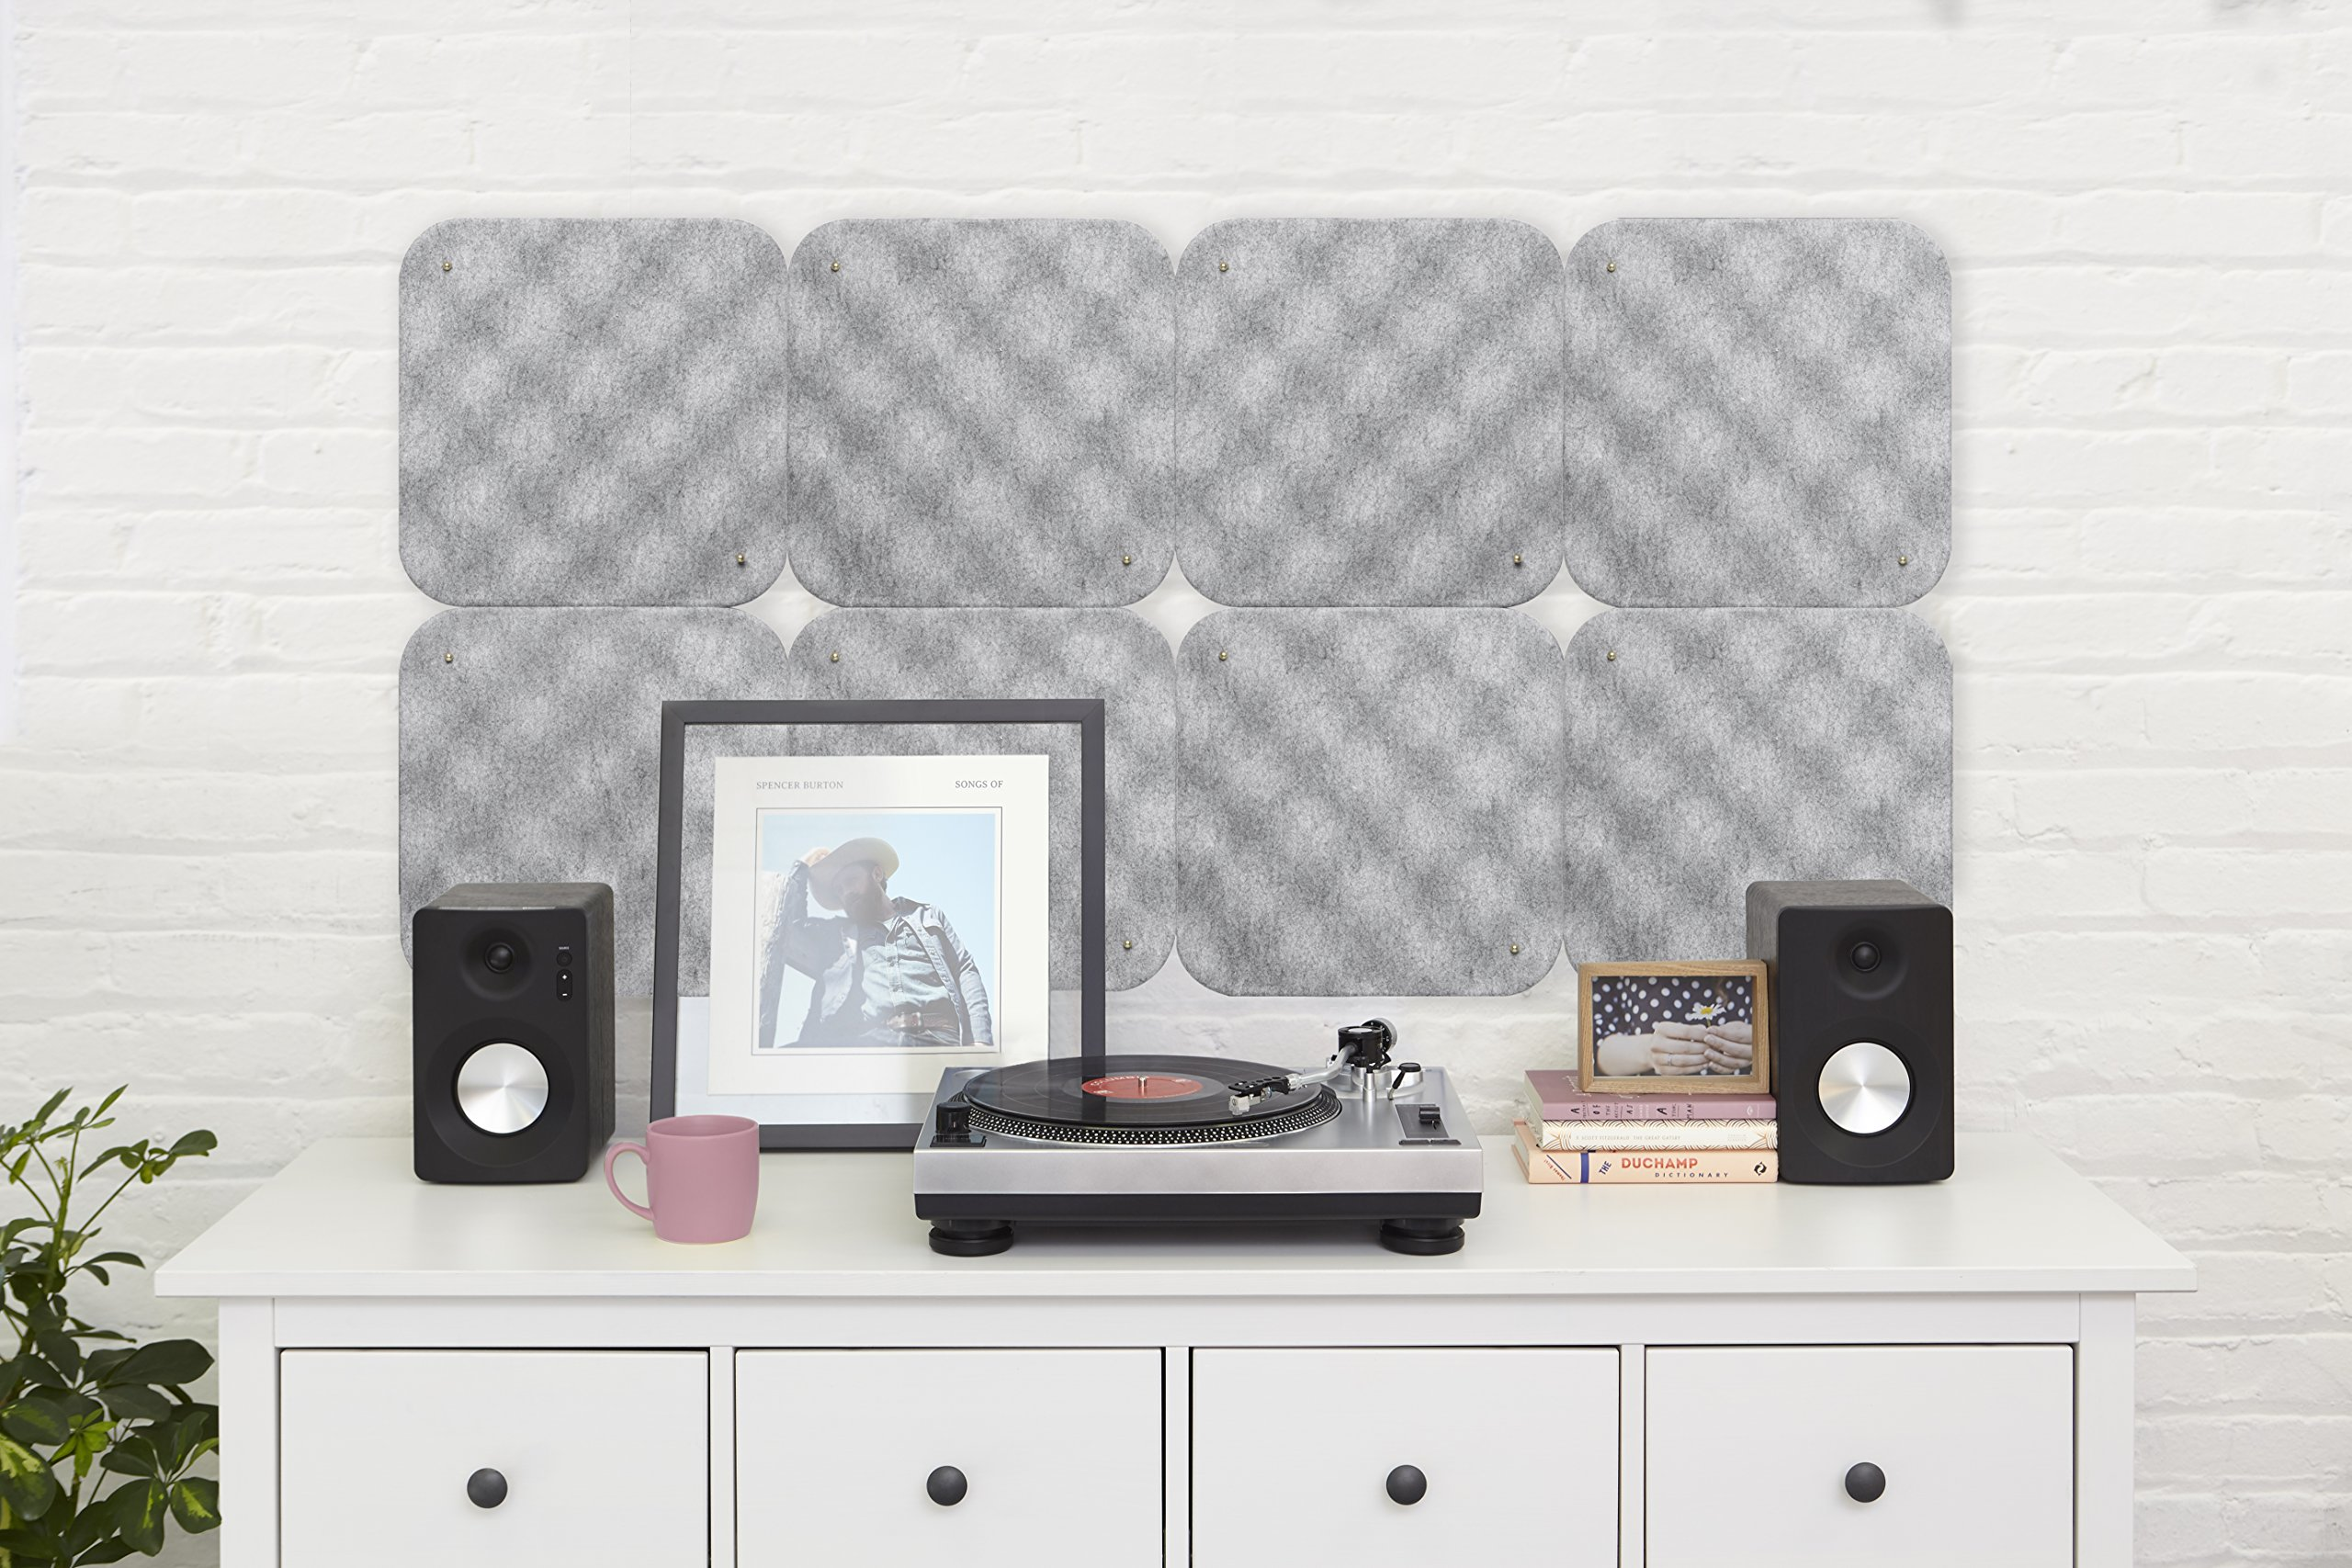 Umbra Hush Acoustic Wall Tiles, Grey by Umbra